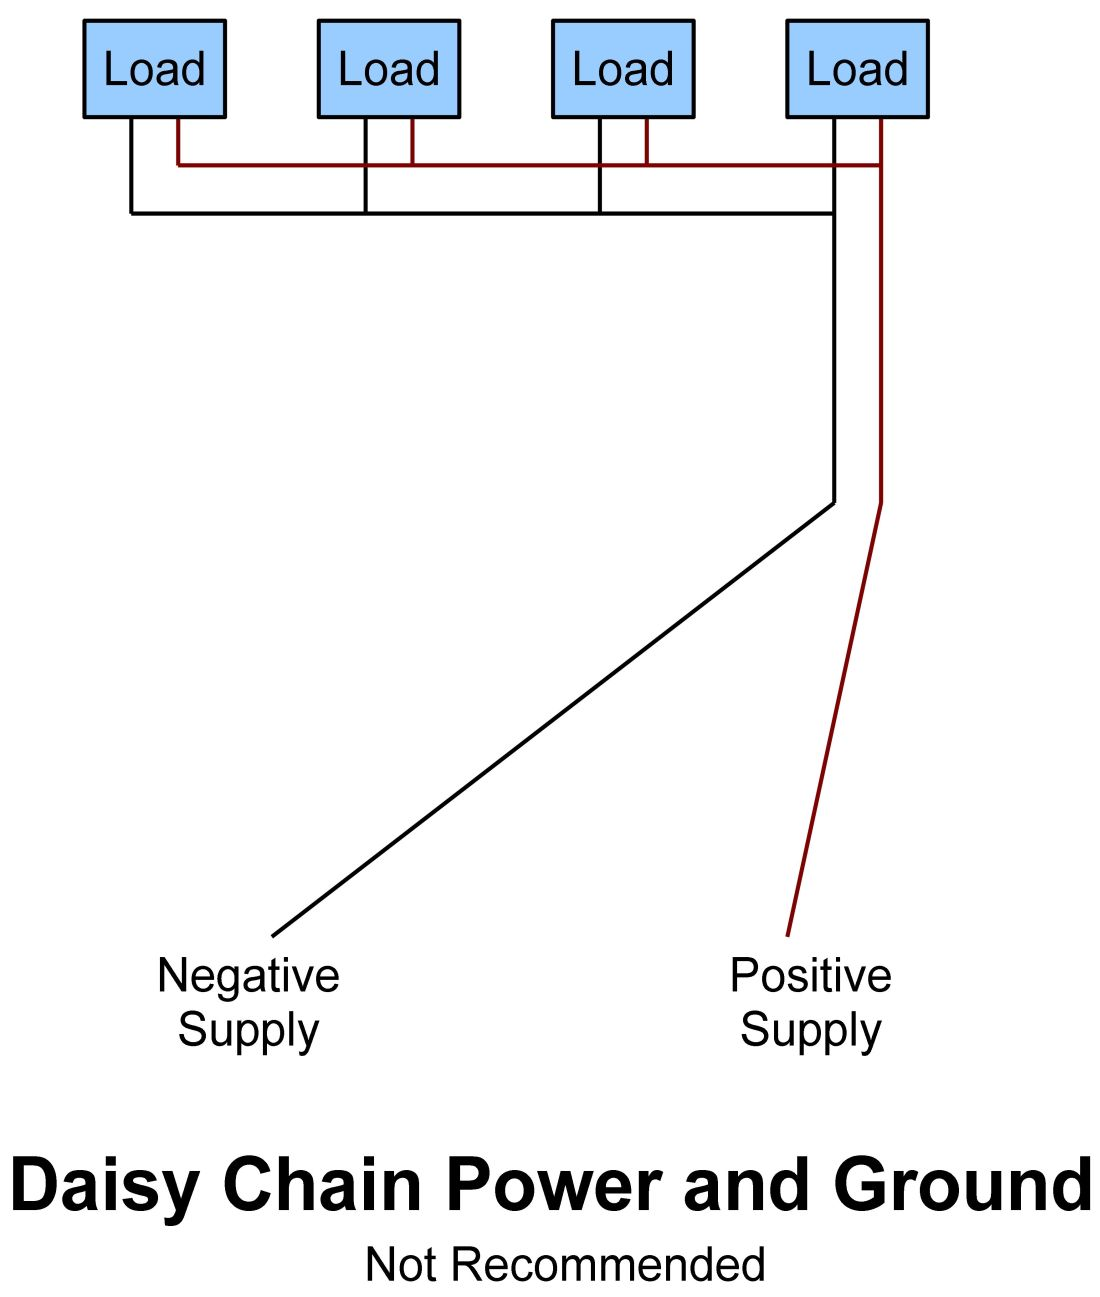 small resolution of  067 daisychain ground resized665 2c7846ssld1 daisy chain electrical wiring diagram efcaviation com daisy chain